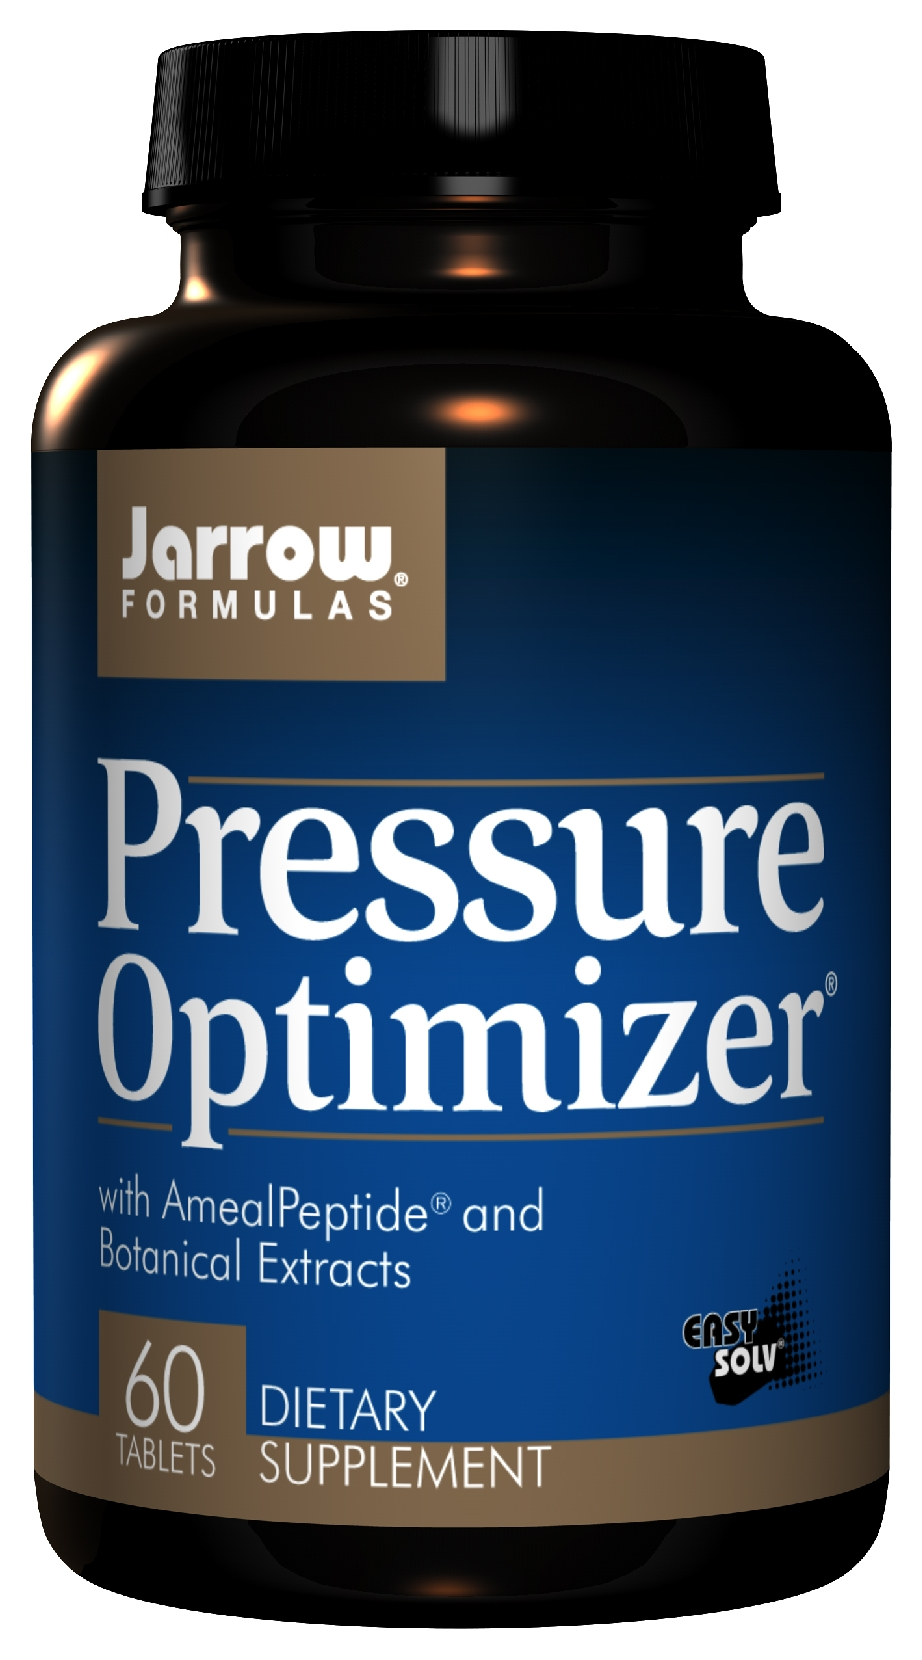 Pressure Optimizer 60 Easy-Solv tabs by Jarrow Formulas